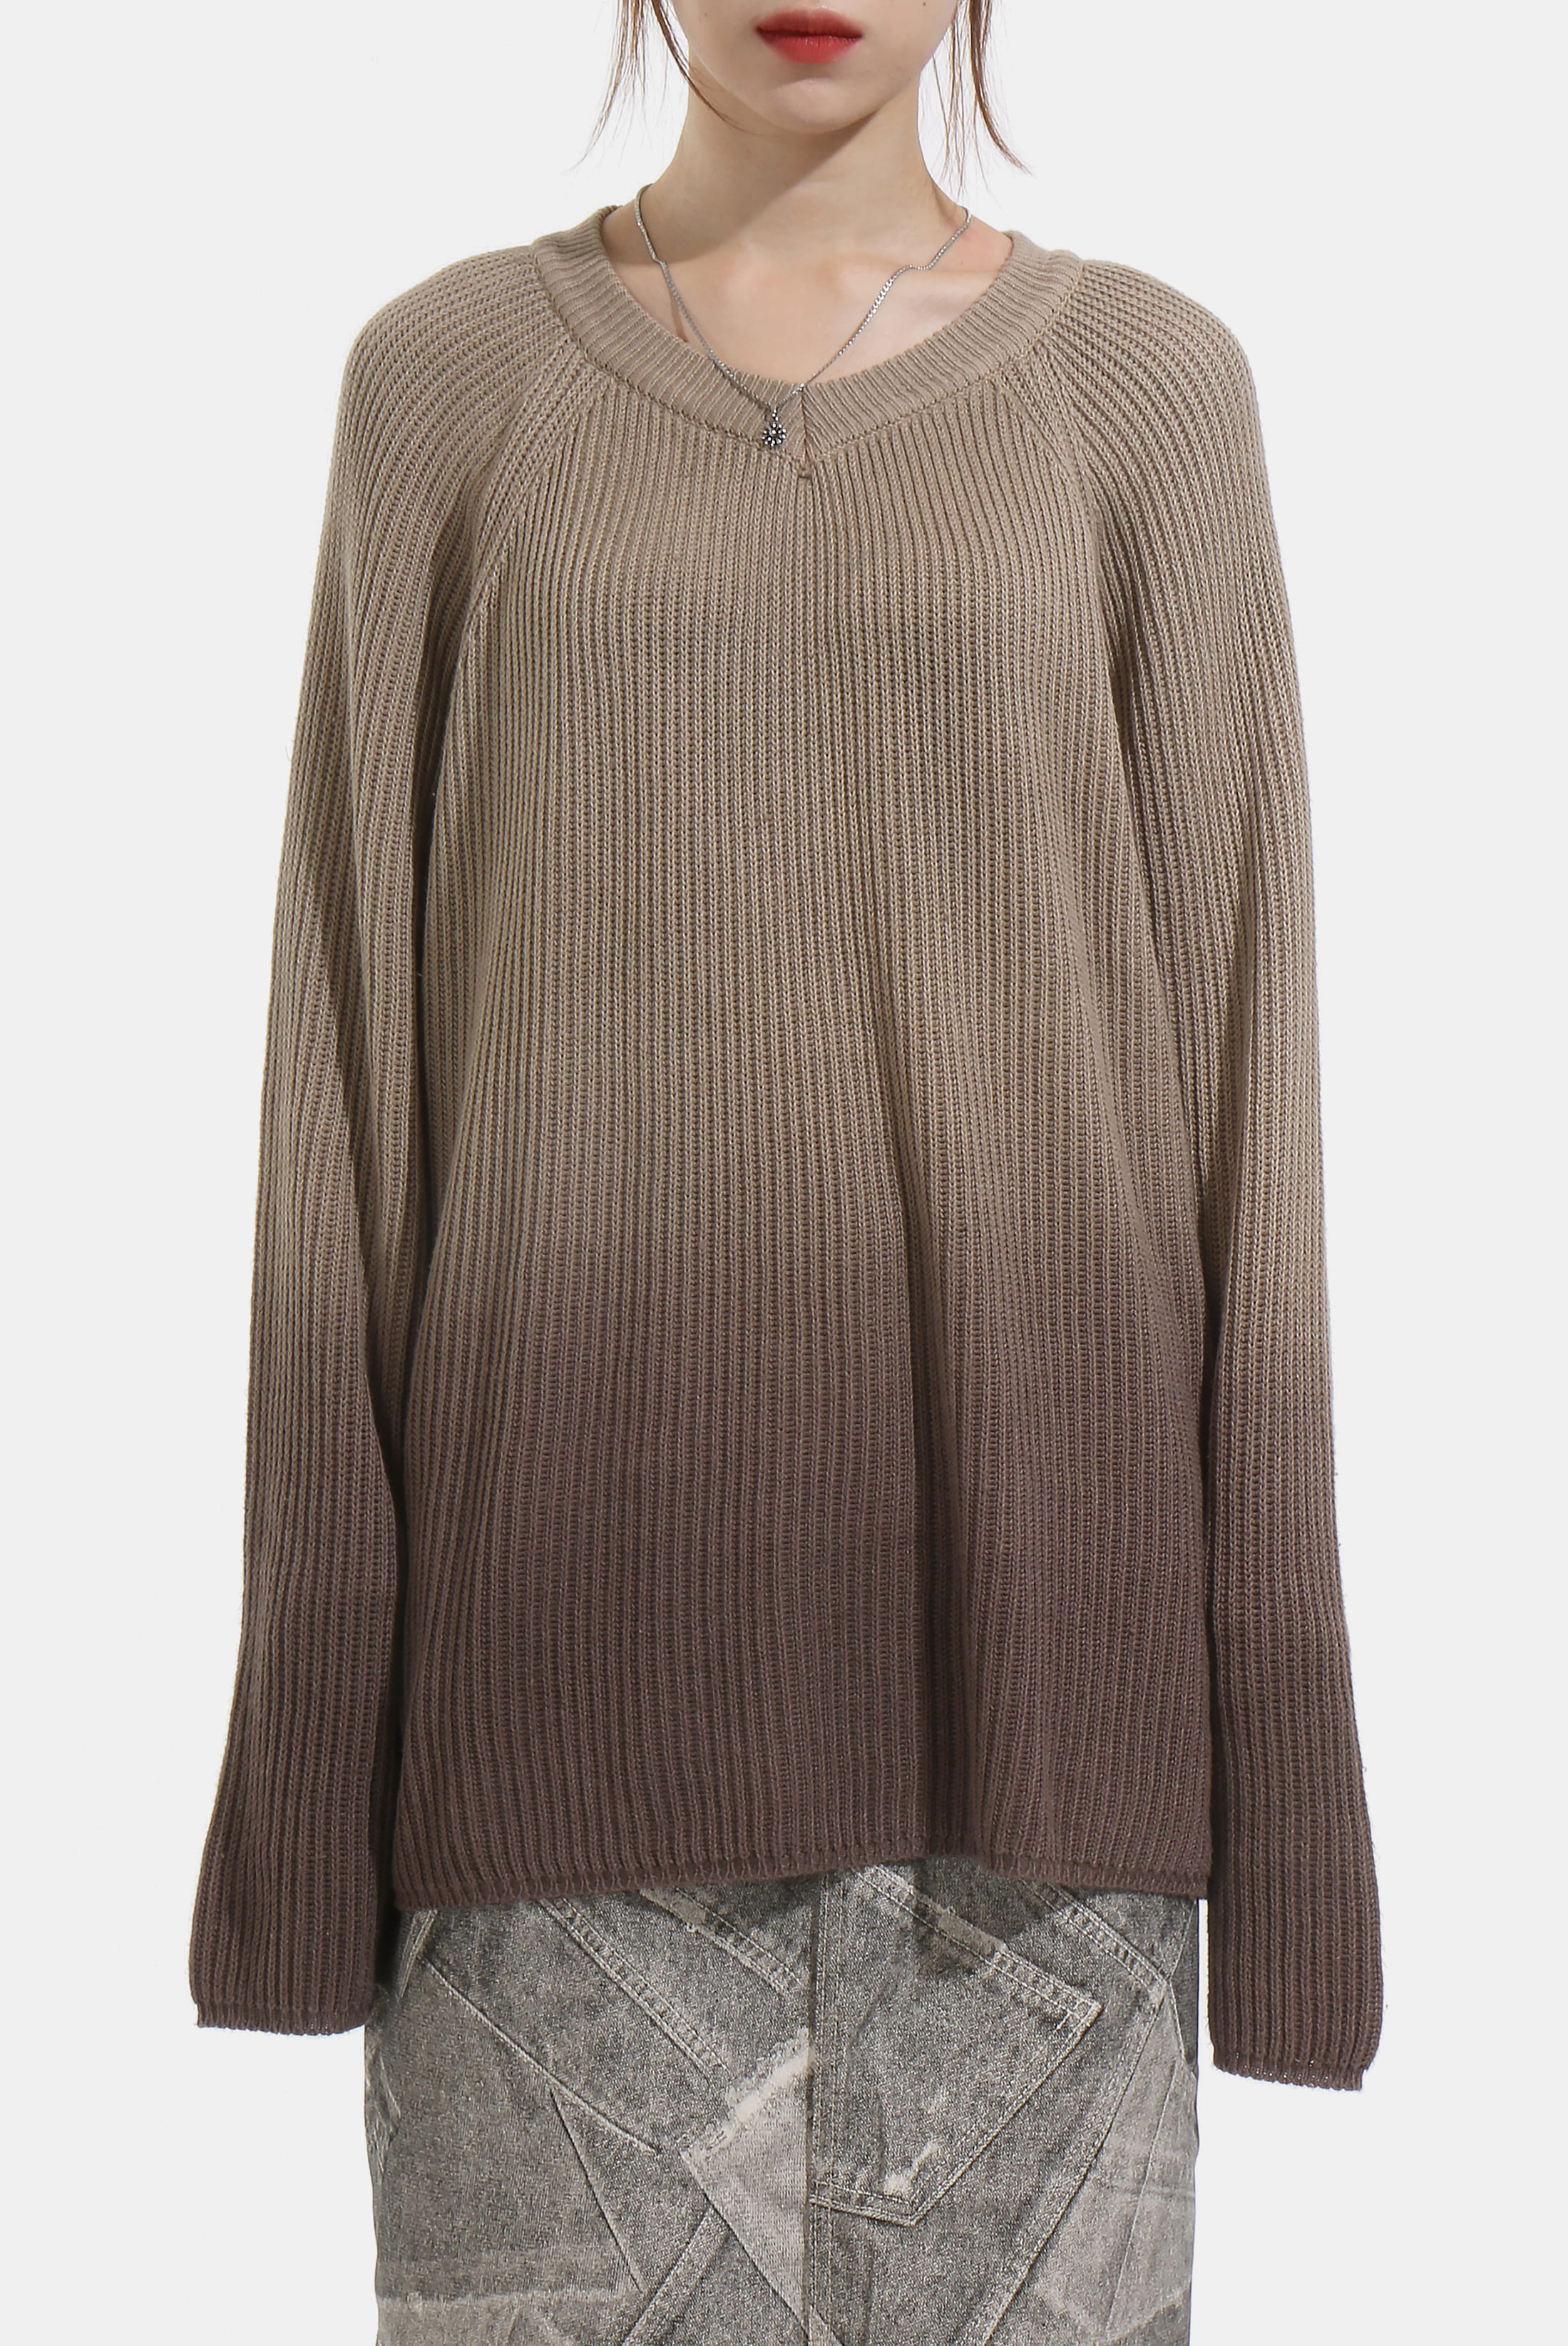 (W) Oversize V_Neck Gradation_Knit